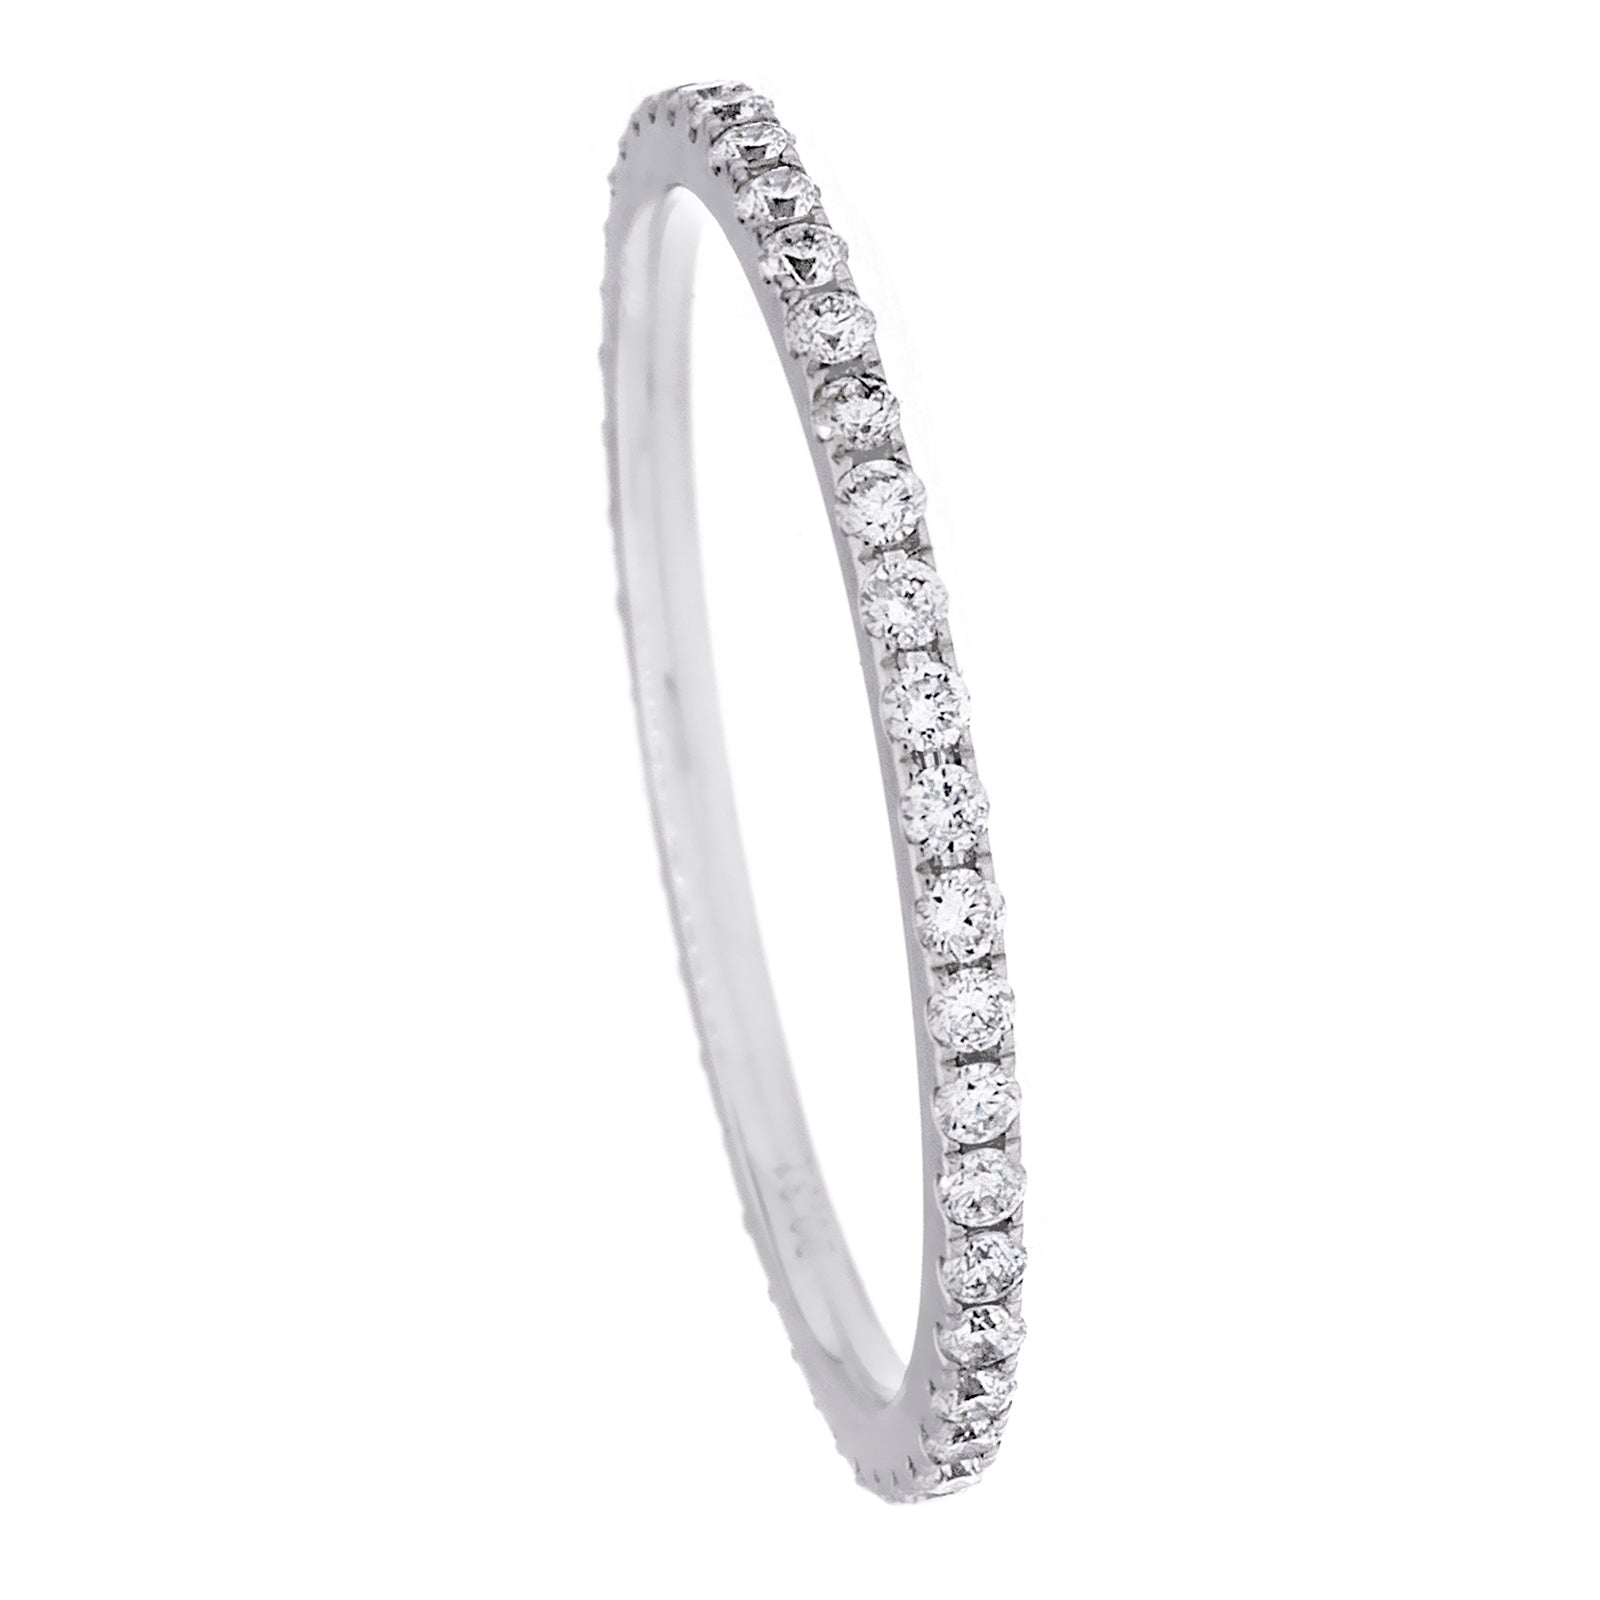 Diamonds & 18K White Gold Single Band Ring - SOLD/CAN BE SPECIAL ORDERED WITH 4-6 WEEKS DELIVERY TIME FRAME